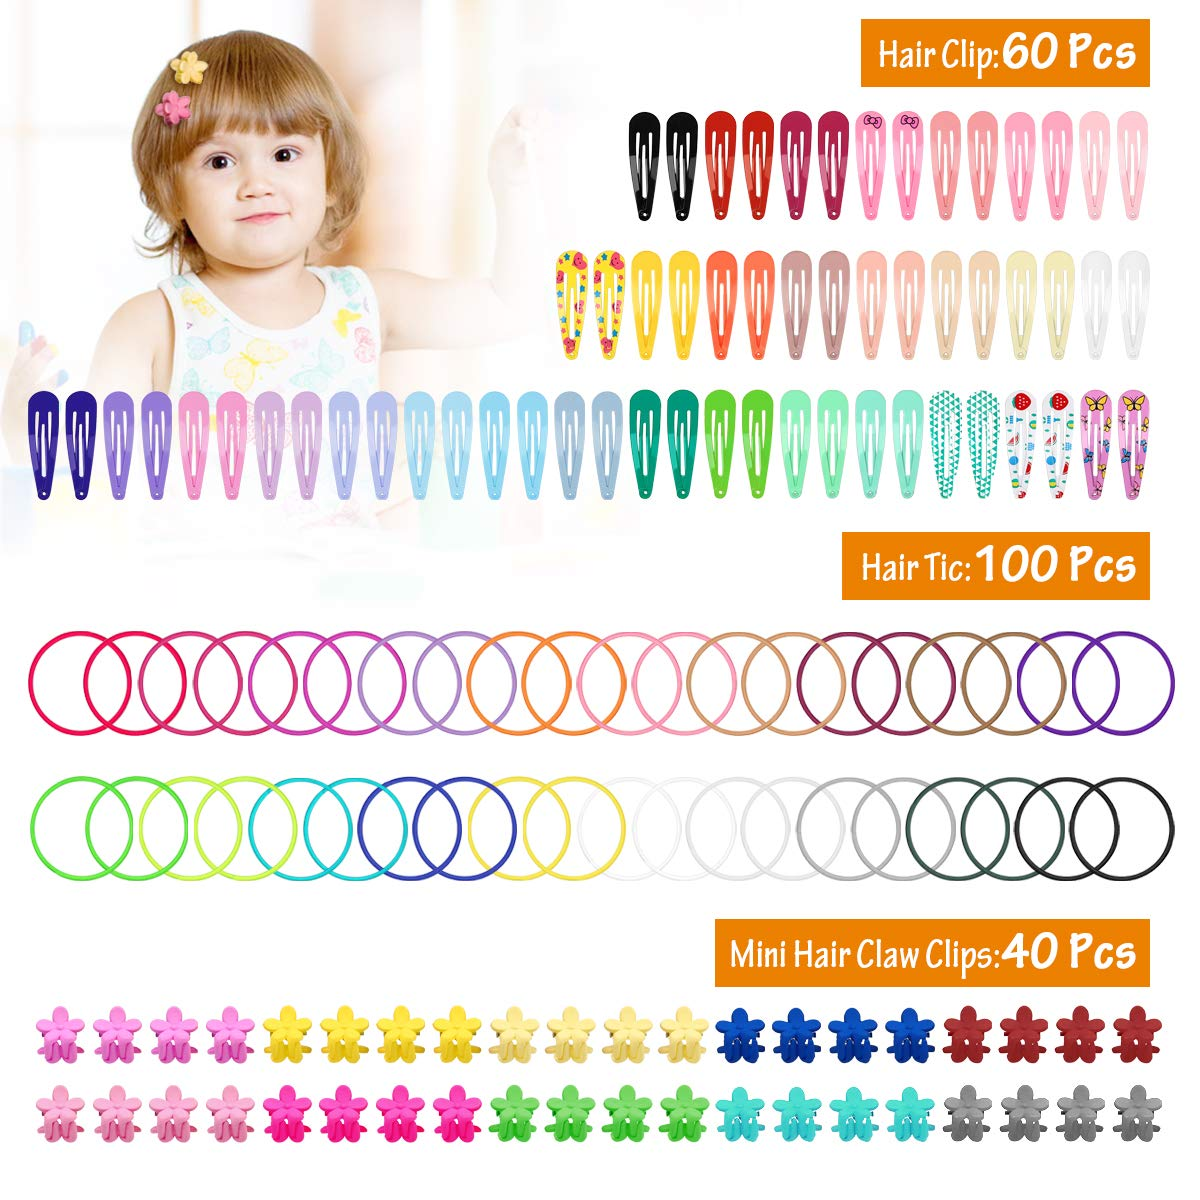 Hotrose 200 Packs Baby Girls Hair Accessories Set - 100Pcs Multicolor No Crease Hair Ties - 60Pcs Candy Color Snap Clips - 40Pcs Mini Flower Claw Clips for Girls and Women